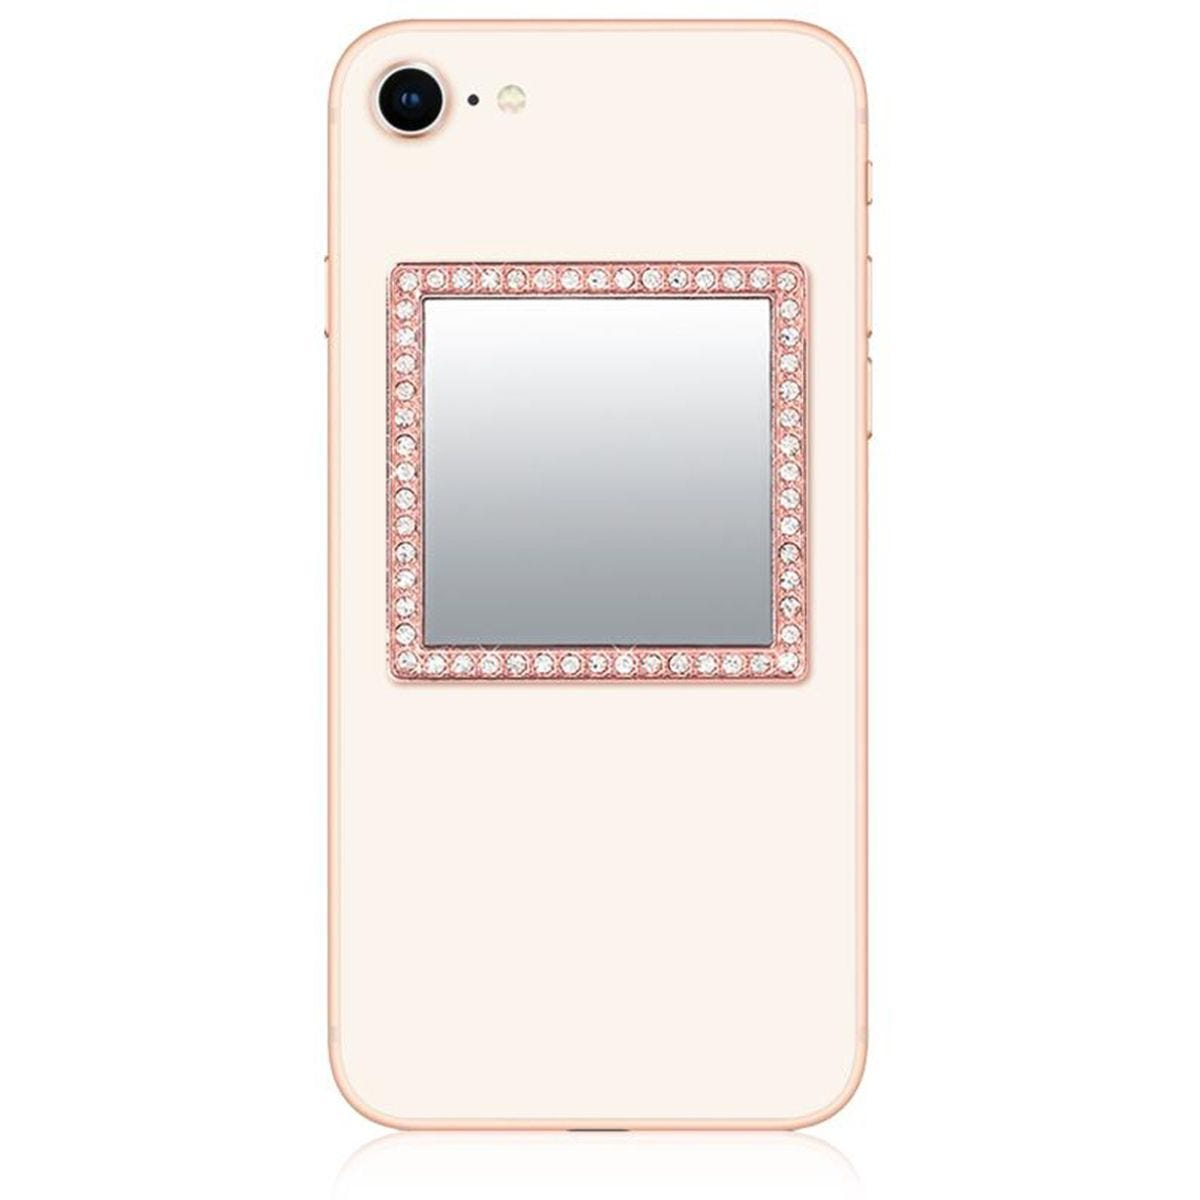 iDecoz Rose Gold Square Phone Mirror with Crystals